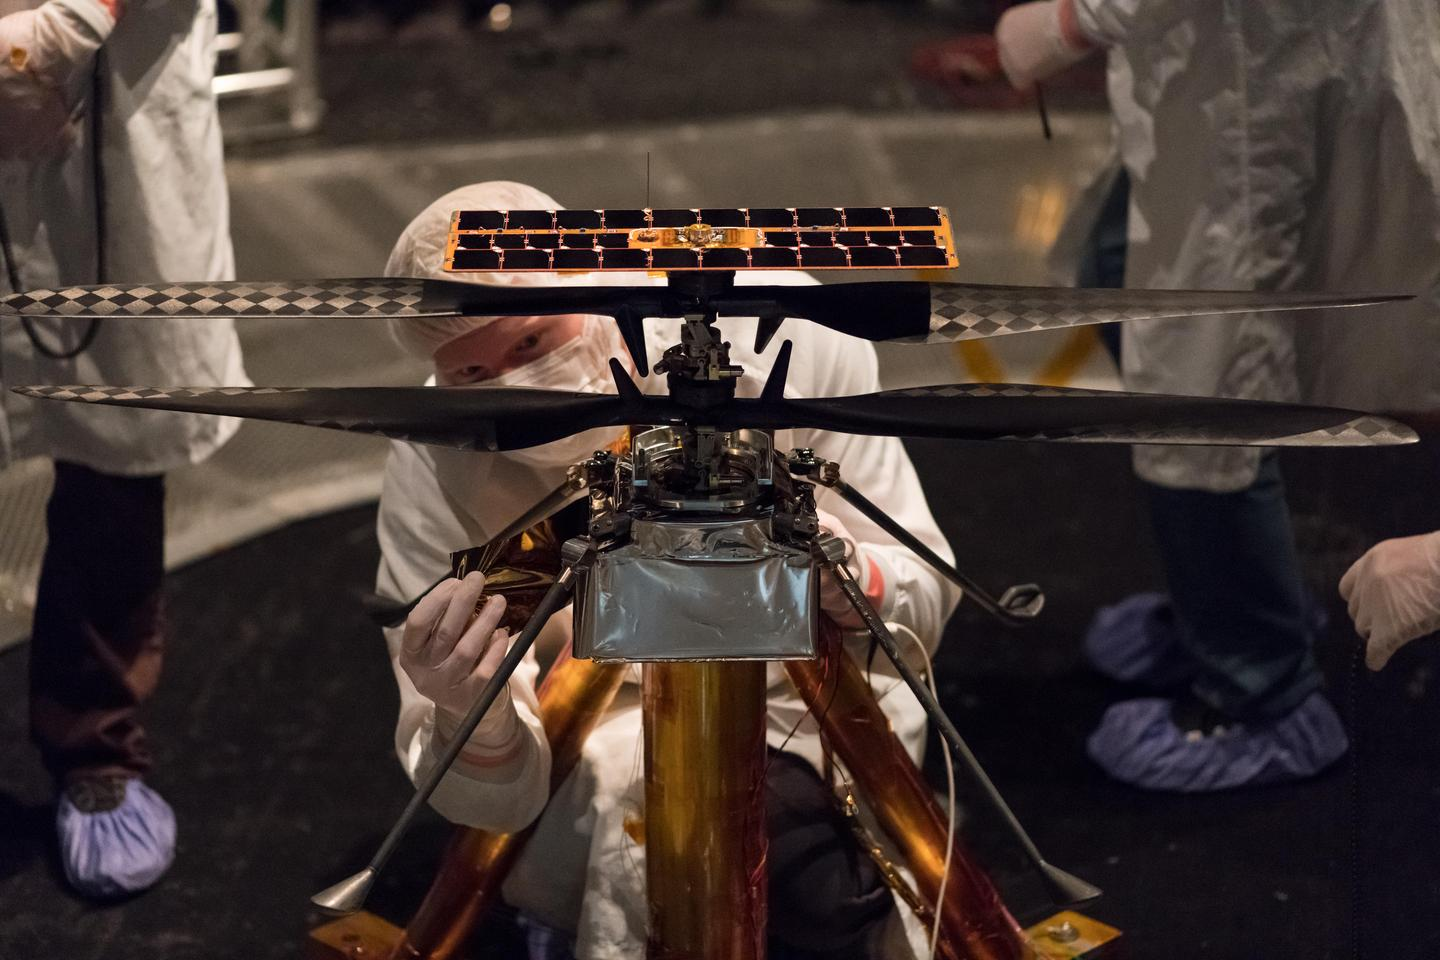 NASA engineers cover the main body of the Mars Helicopter in a protective thermal film